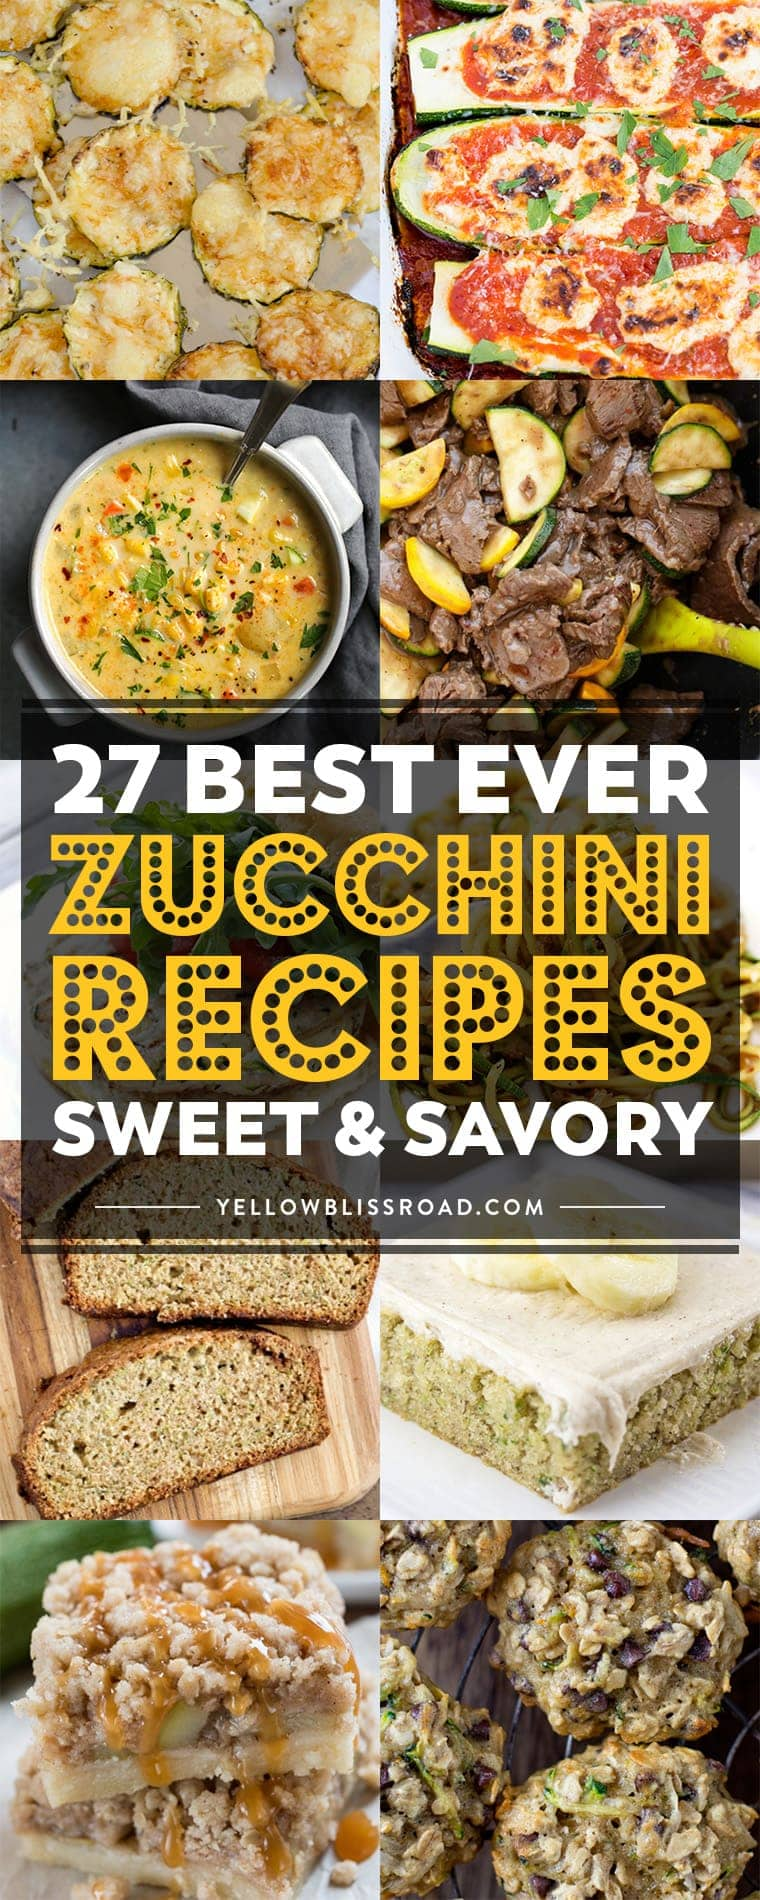 Best Ever Zucchini Recipes